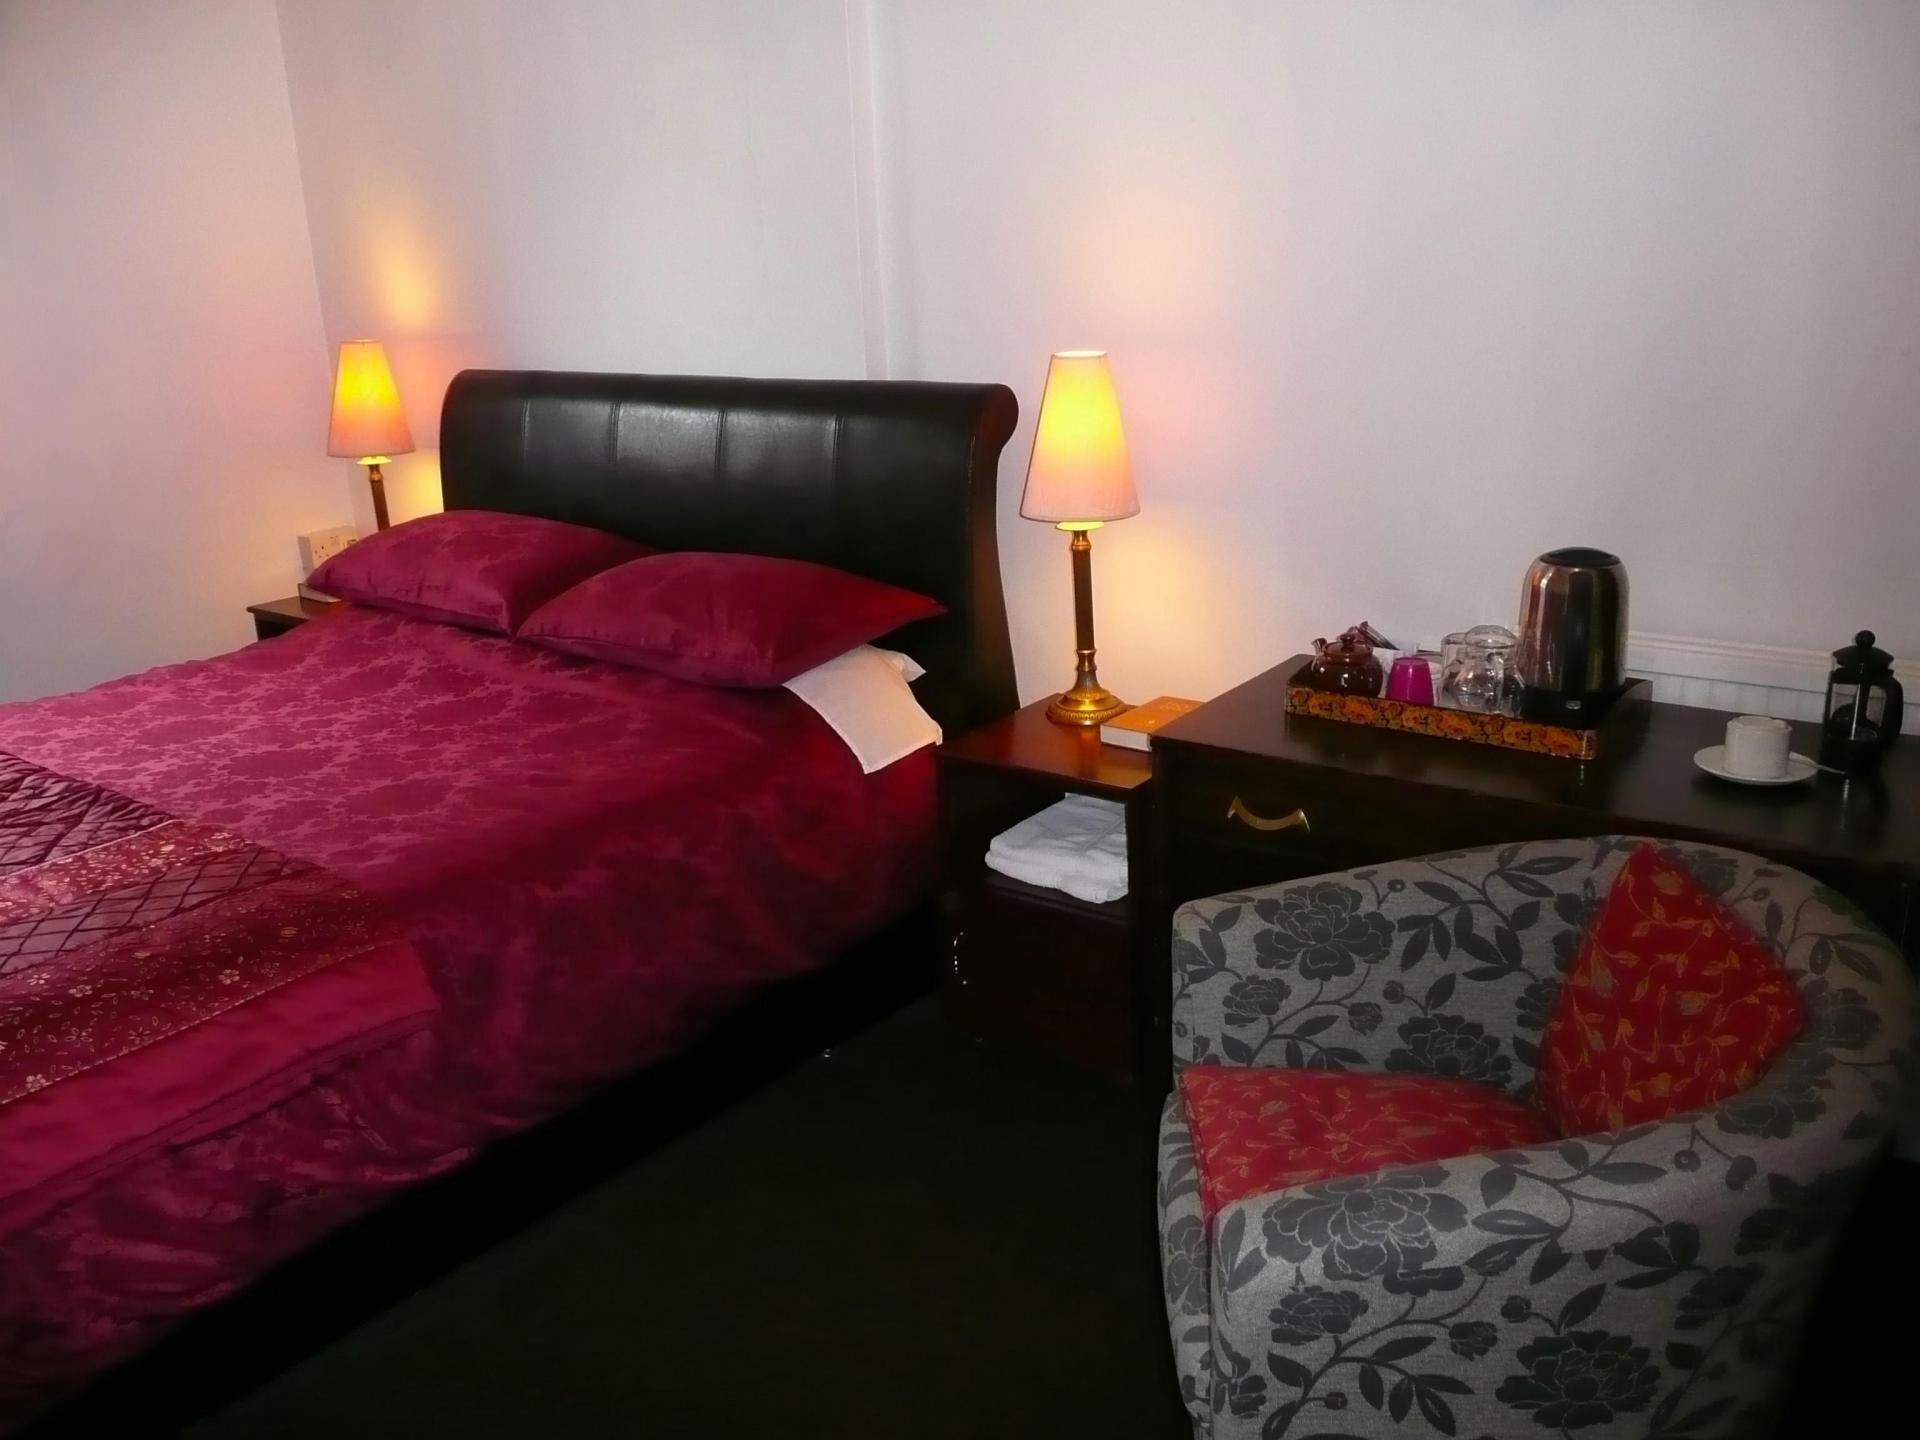 Downstairs Coach House Annexe - Kingsize Annexe Room En Suite Shower Ground Floor. Max 2 People